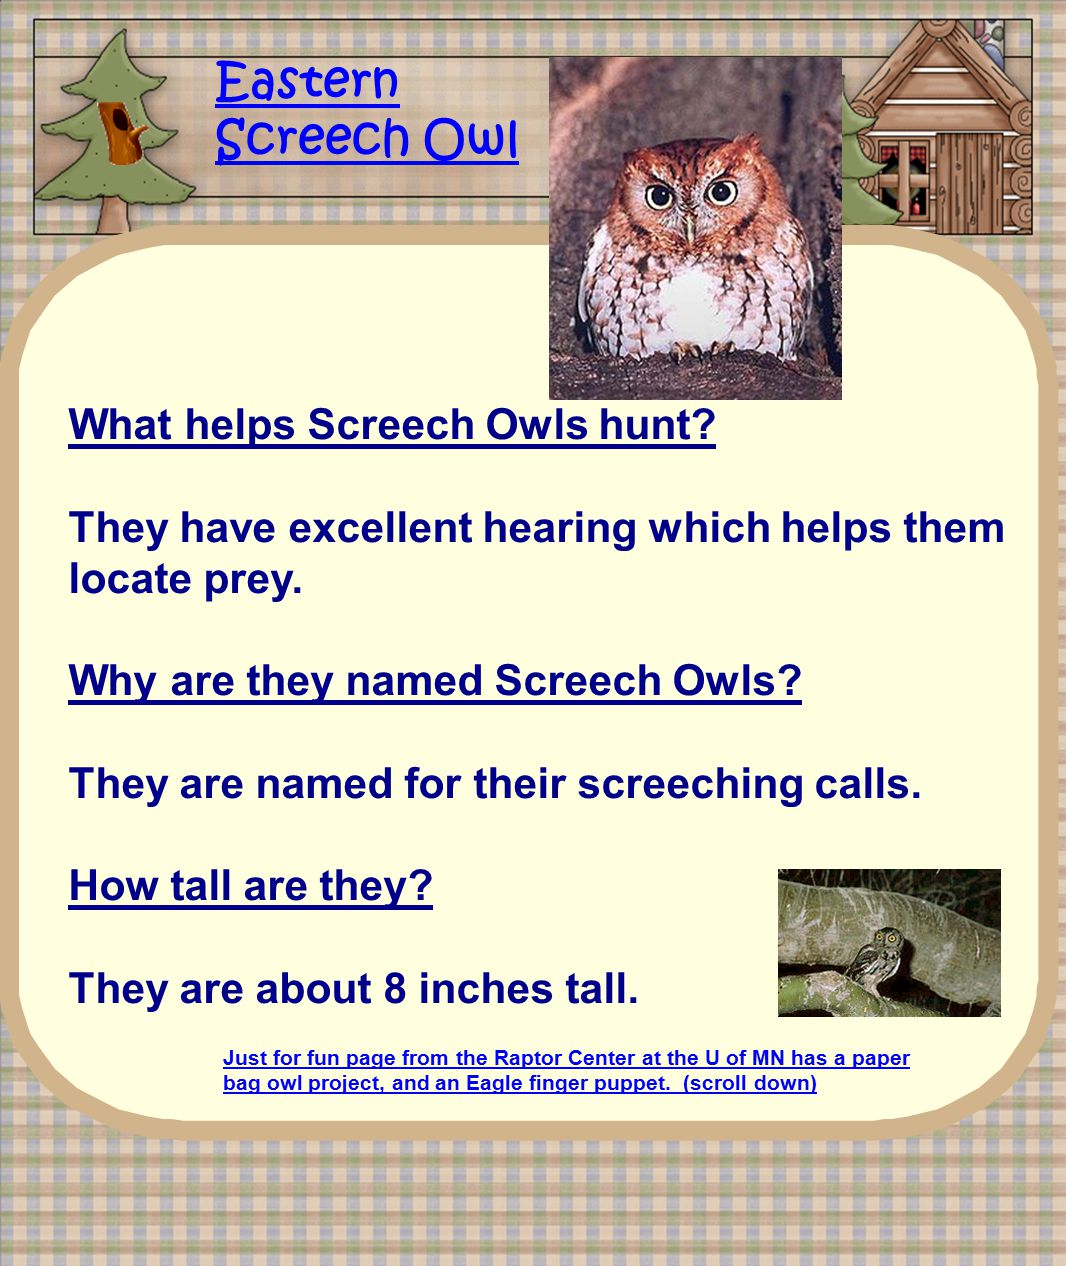 Just for fun page from the Raptor Center at the U of MN has a paper bag owl project, and an Eagle finger puppet. (scroll down) Eastern Screech Owl Wha